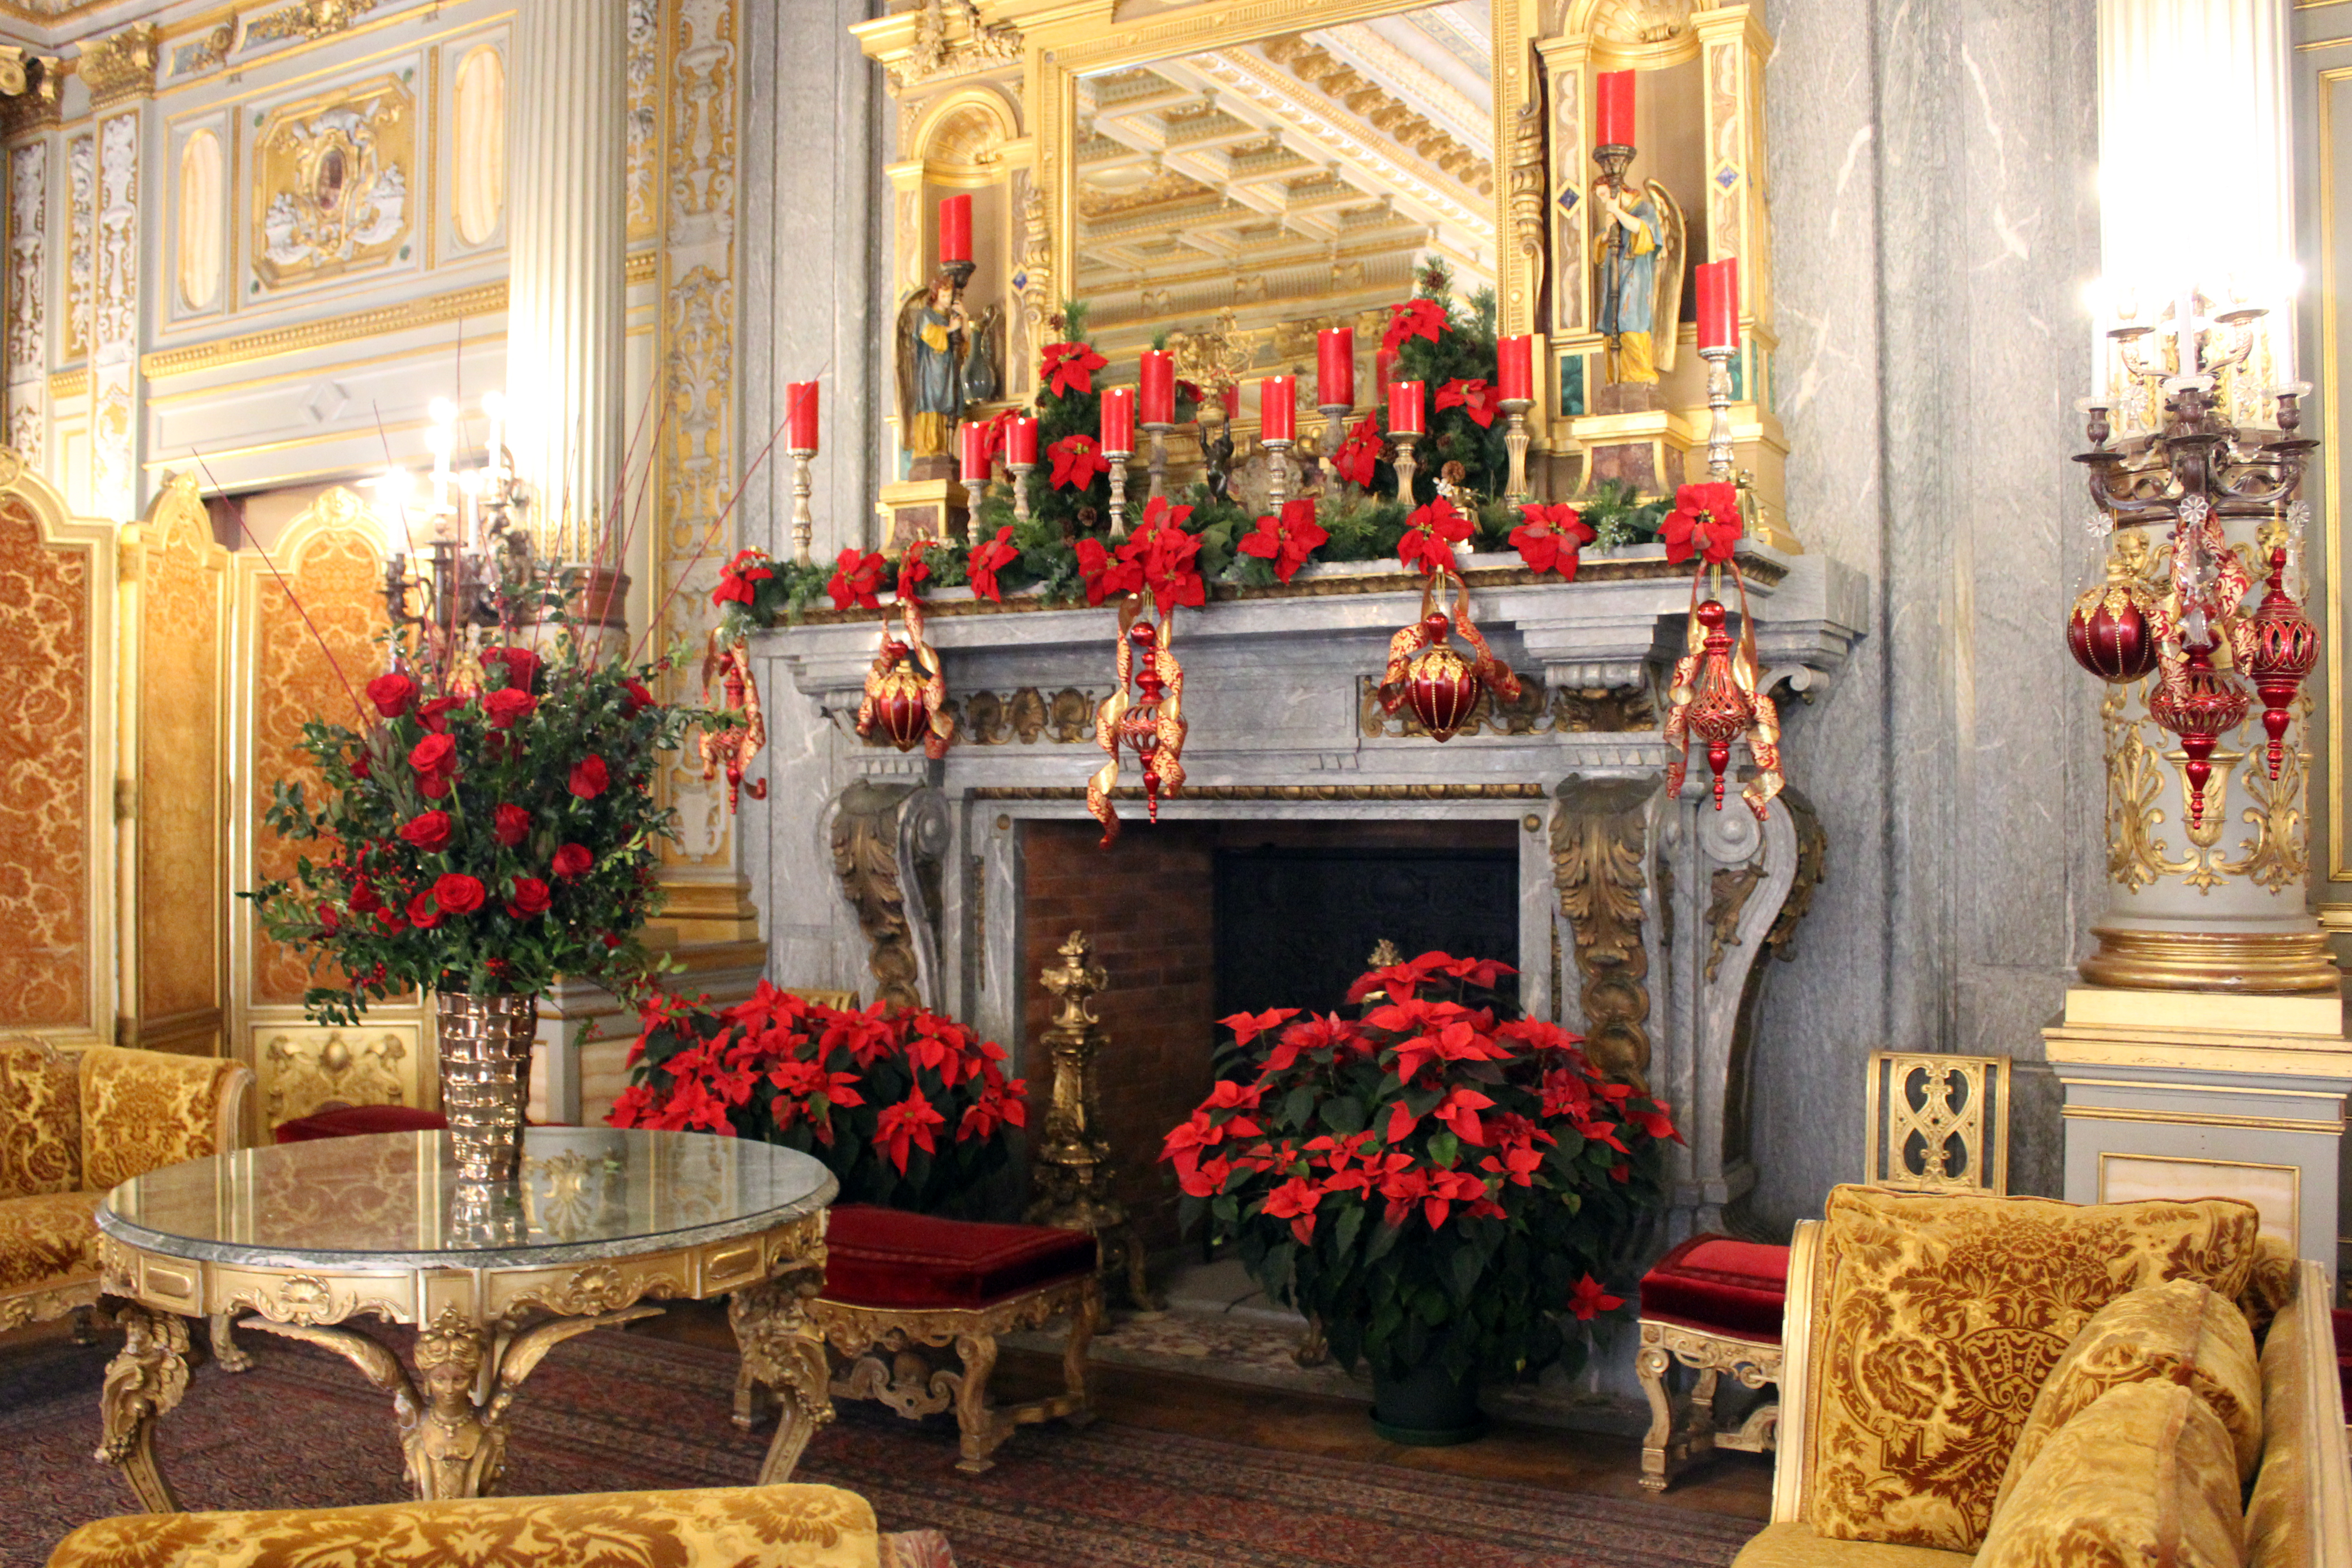 The Breakers - Newport RI | Vibrant holiday decorations surround the Campan marble fireplace of the gilded Music Room, once used for recitals and dances.